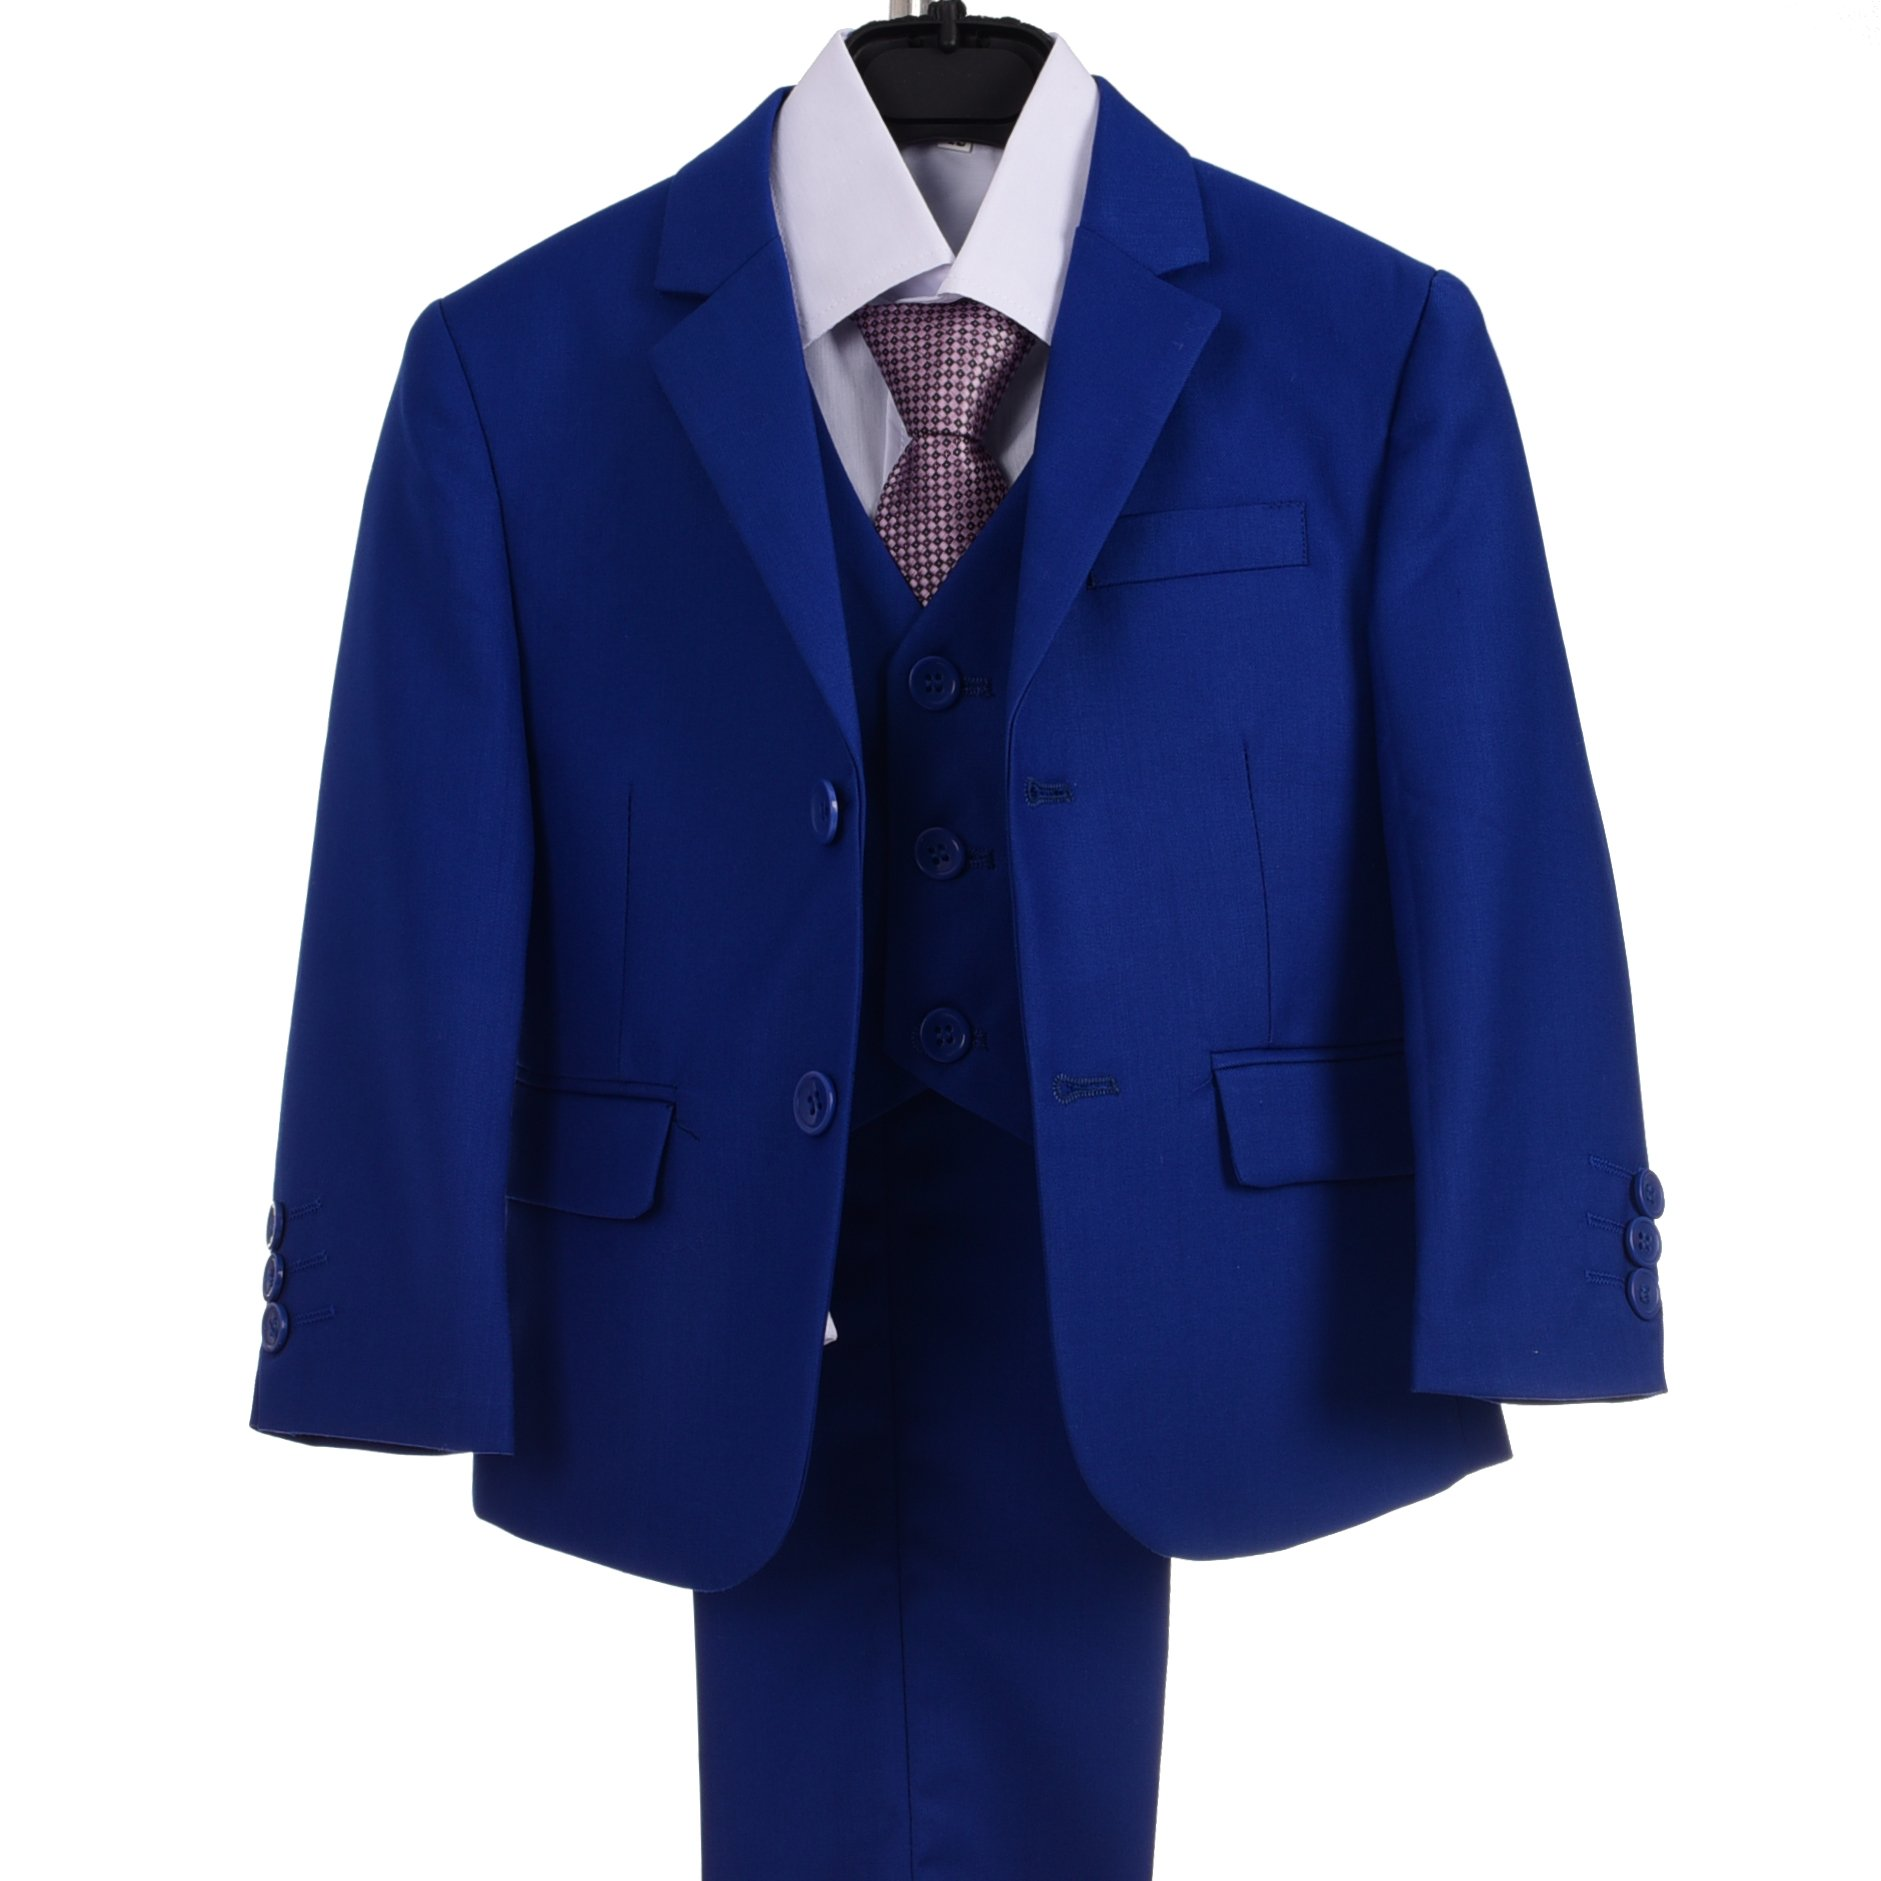 Dressy Daisy Boys Formal Dress Suits 5 Pcs Set Modern Fit Wedding Outfit Dresswear Size 7 Royal Blue